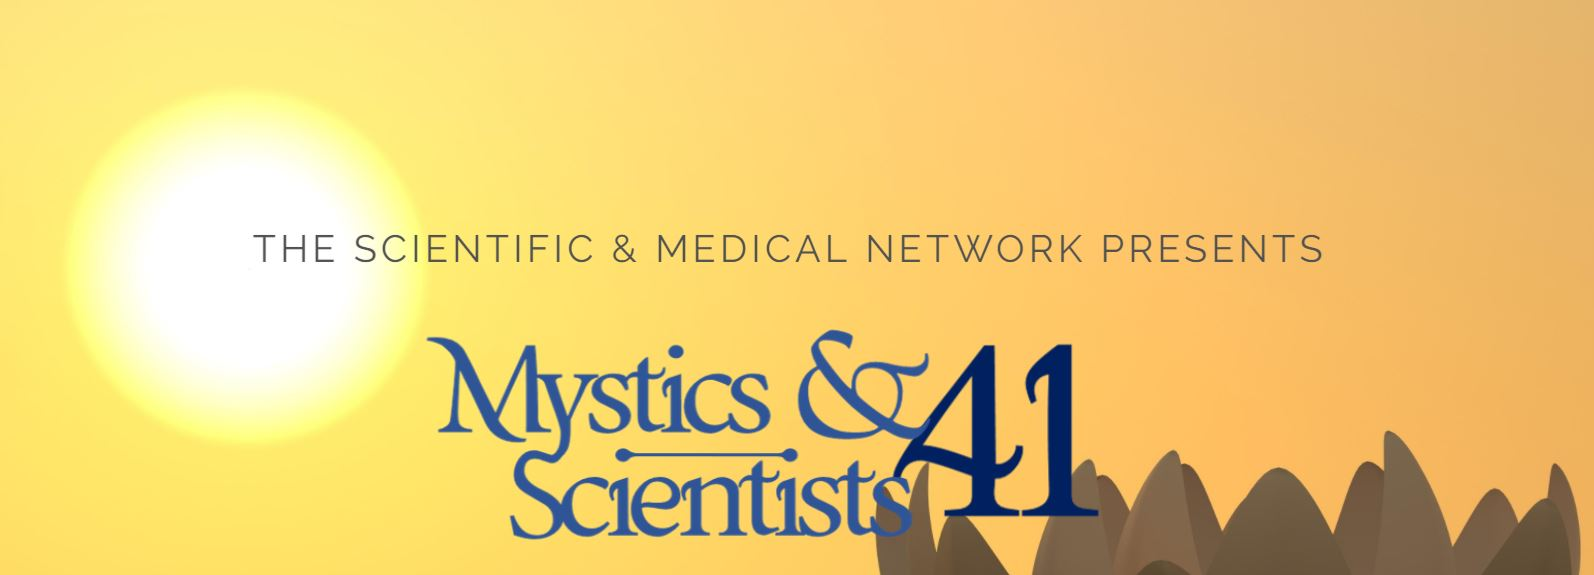 Mystics and Scientists 41